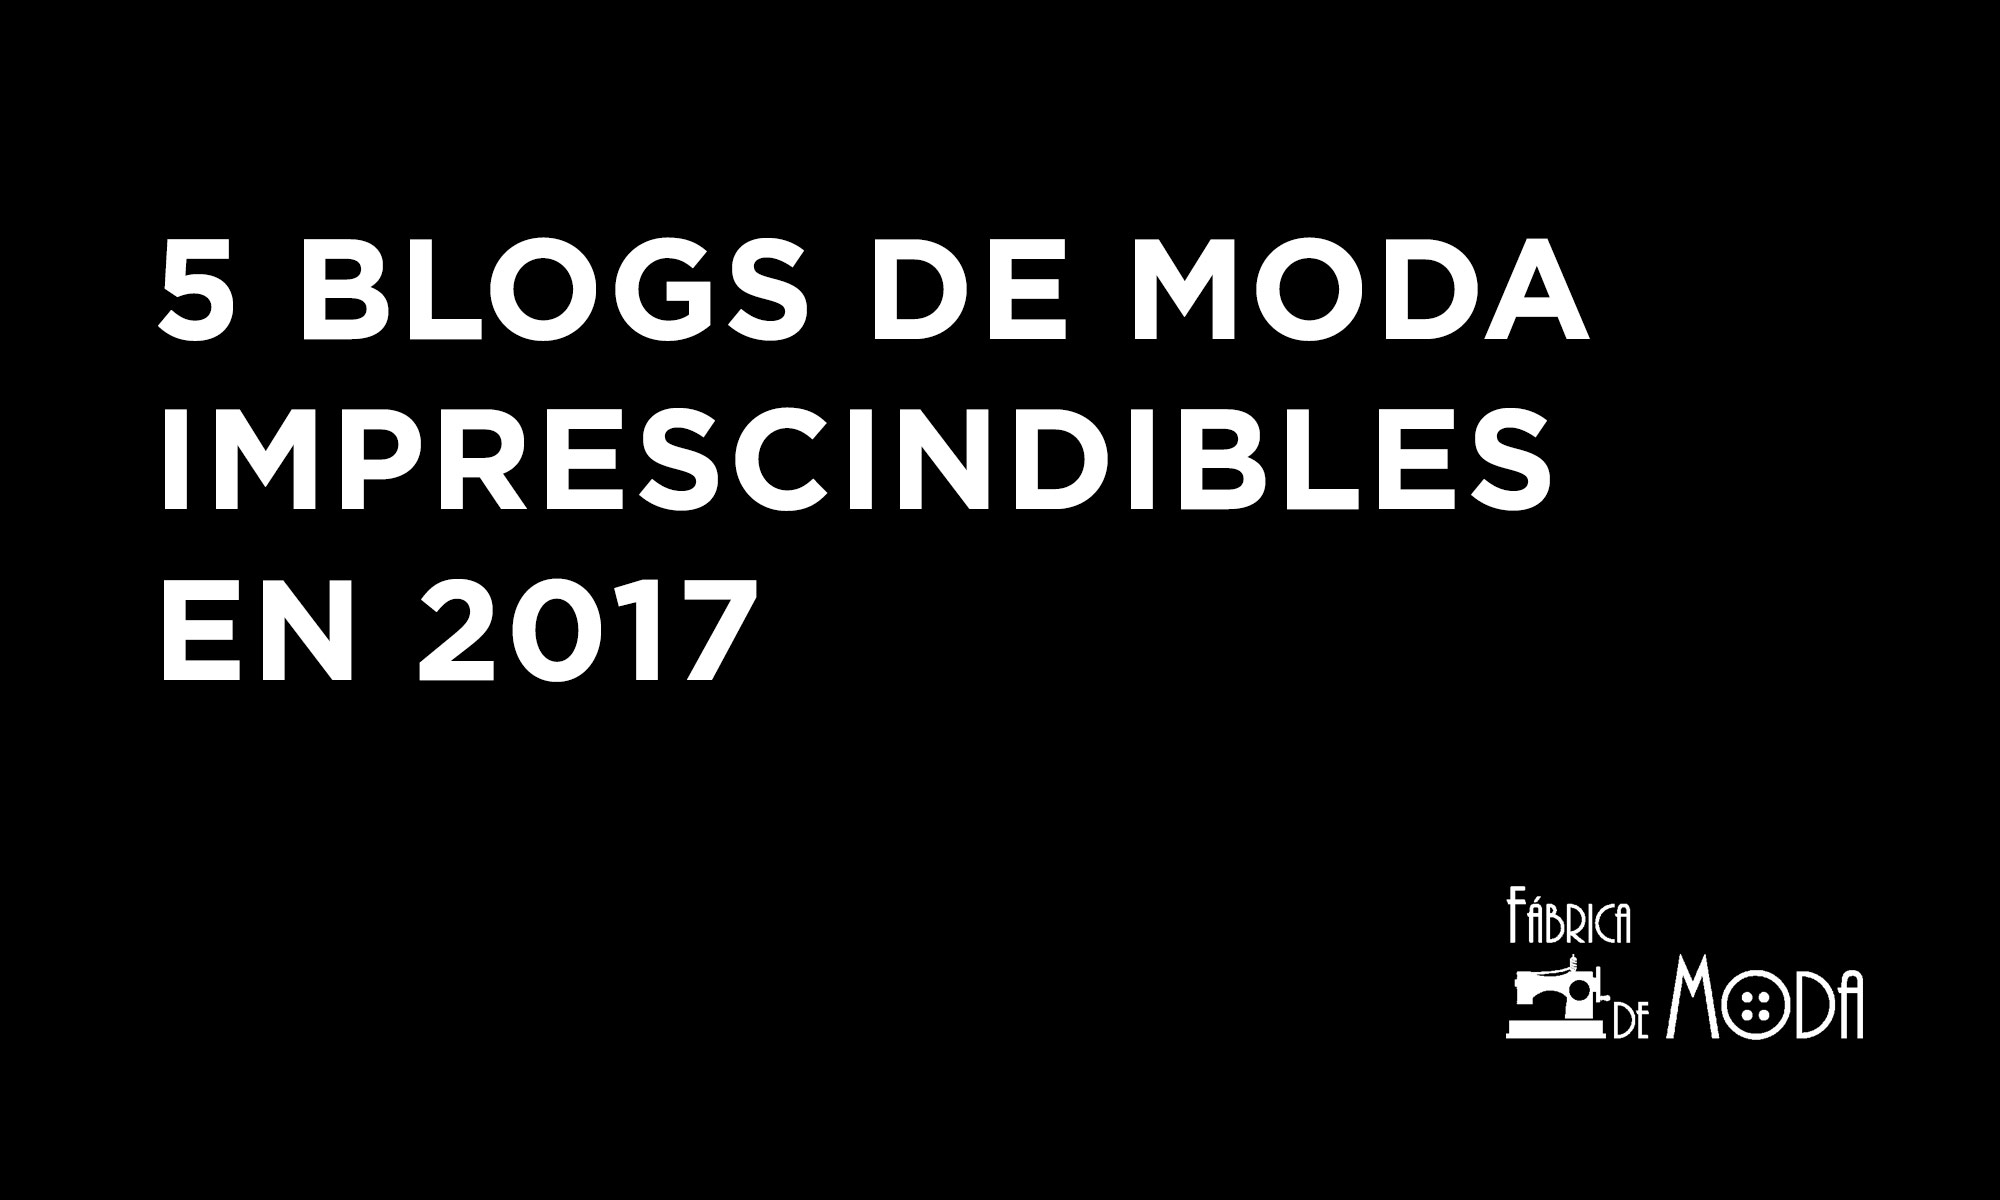 5 blogs de moda imprescindibles en 2017